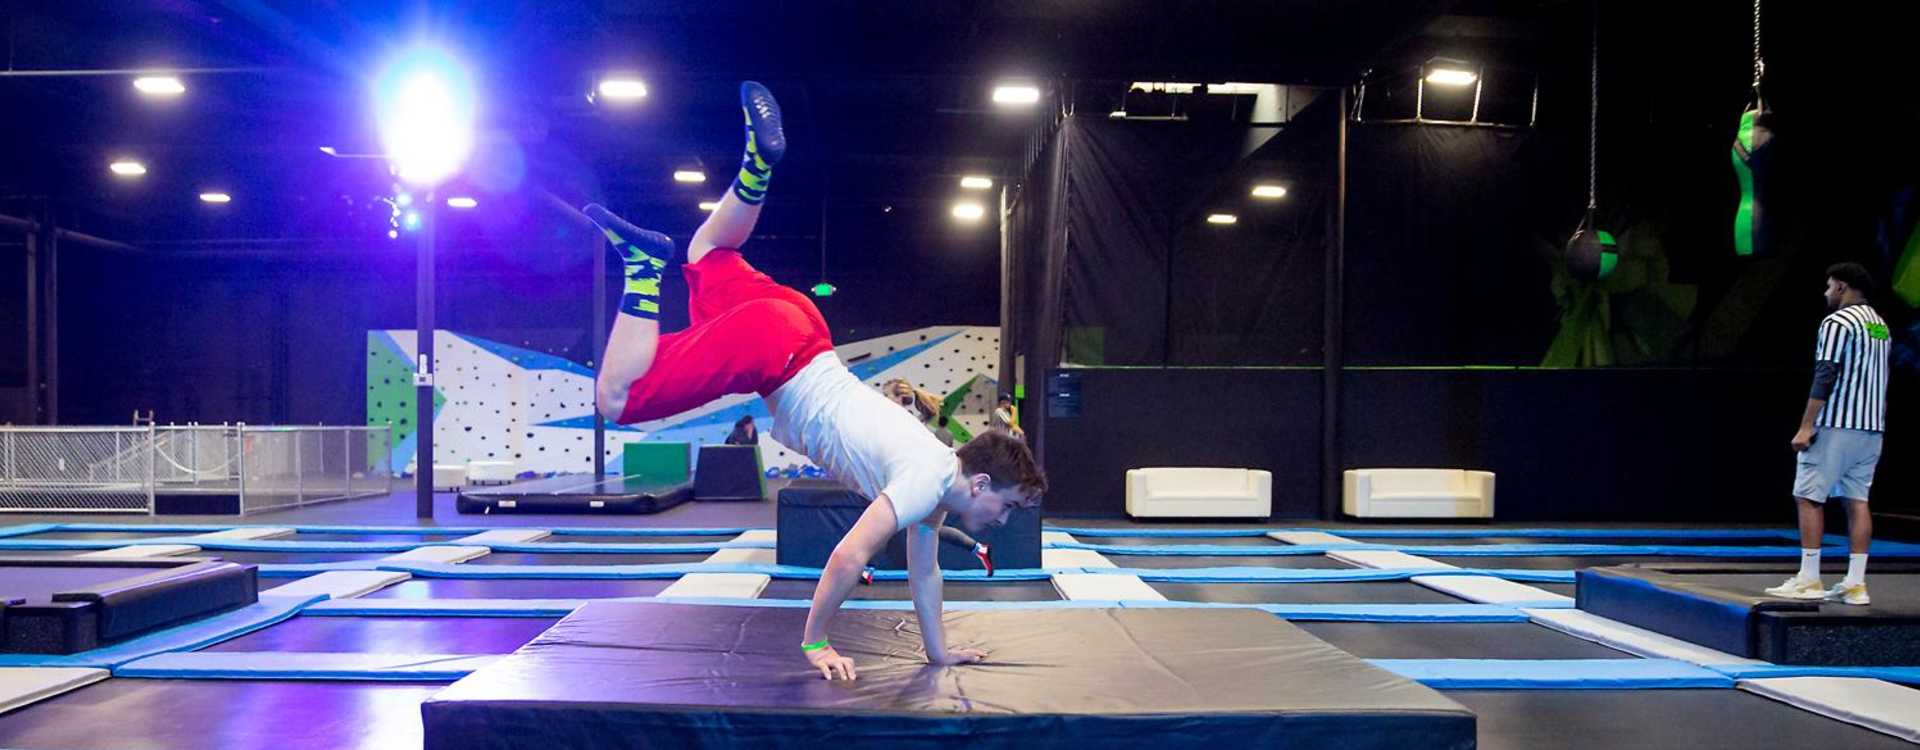 Trampolines and Handstand